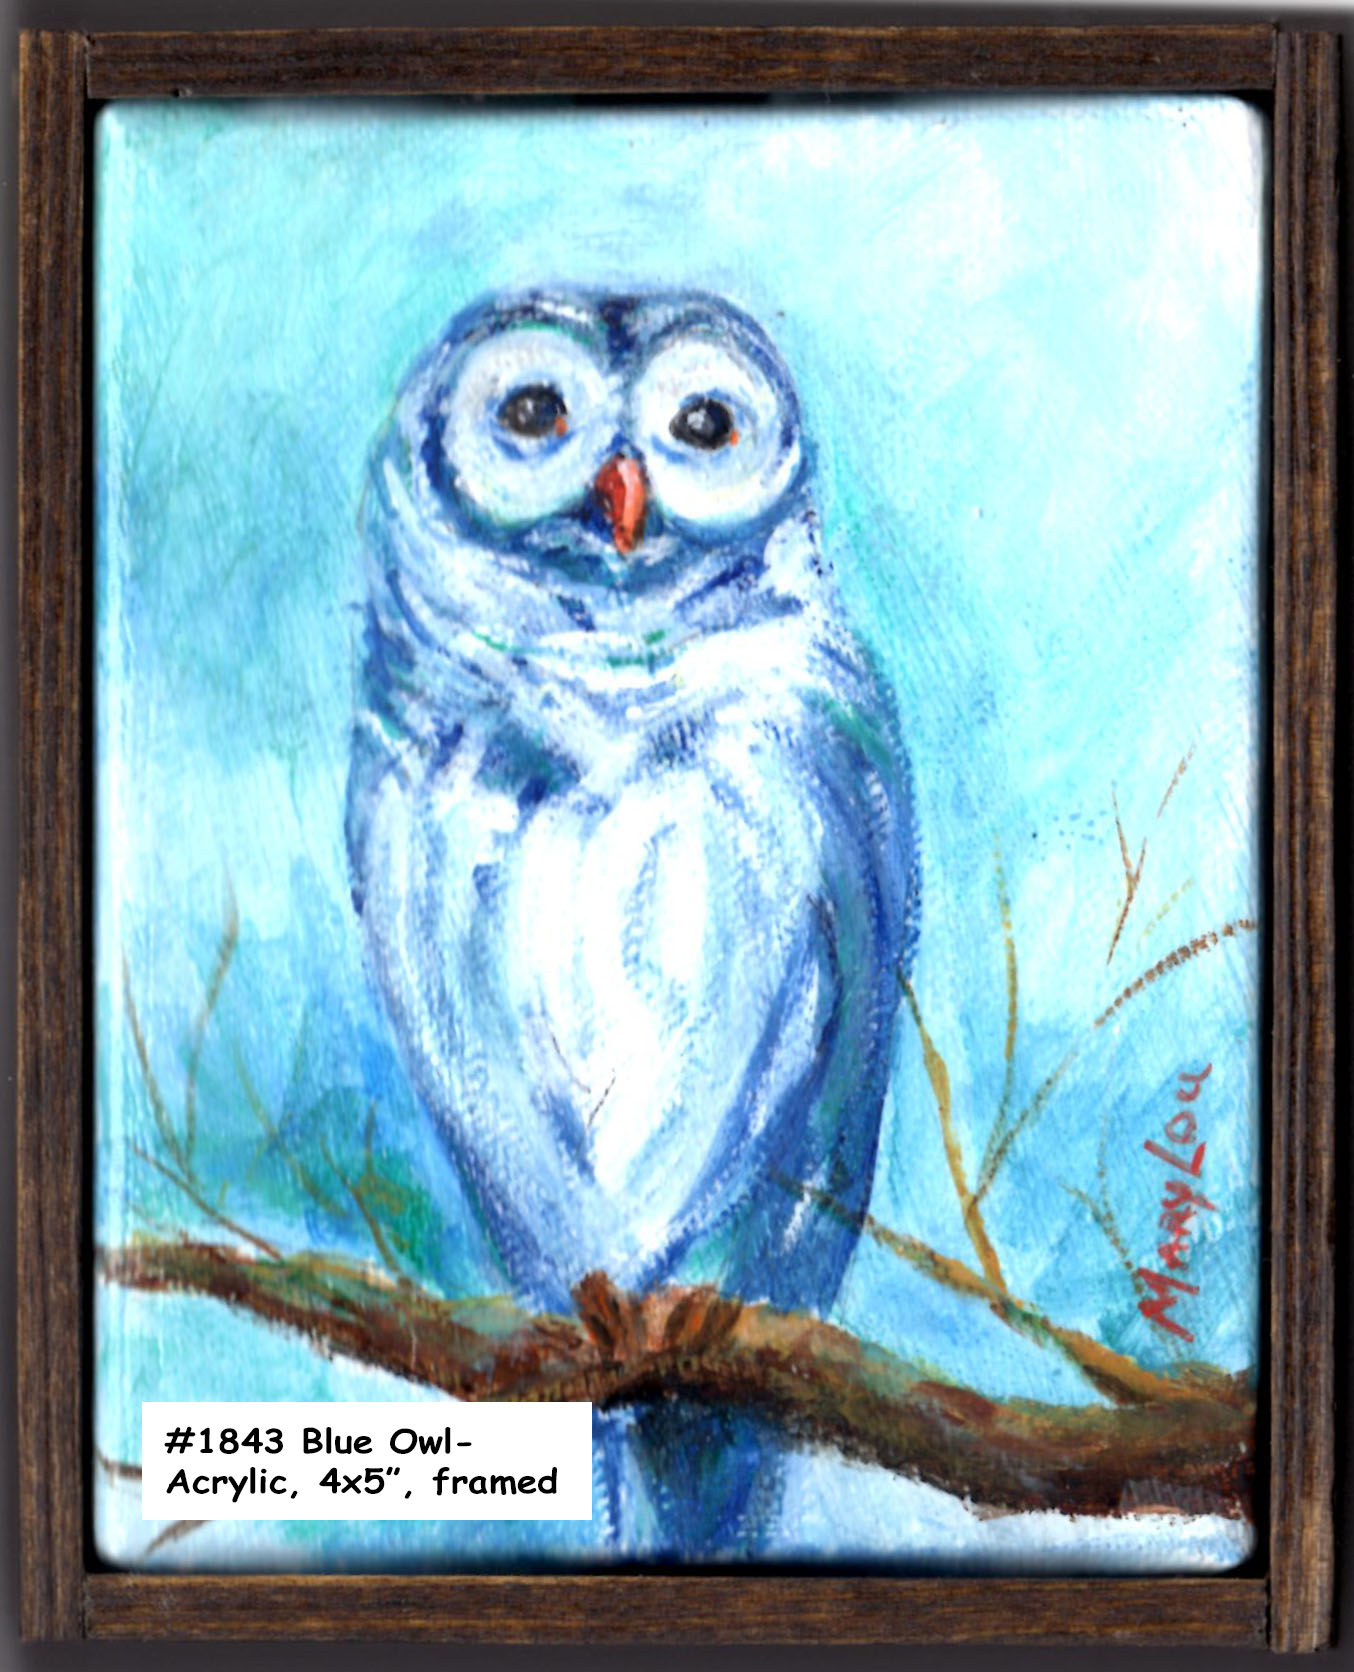 18-43-OwlInBlue-Acrylic-4x5in frame